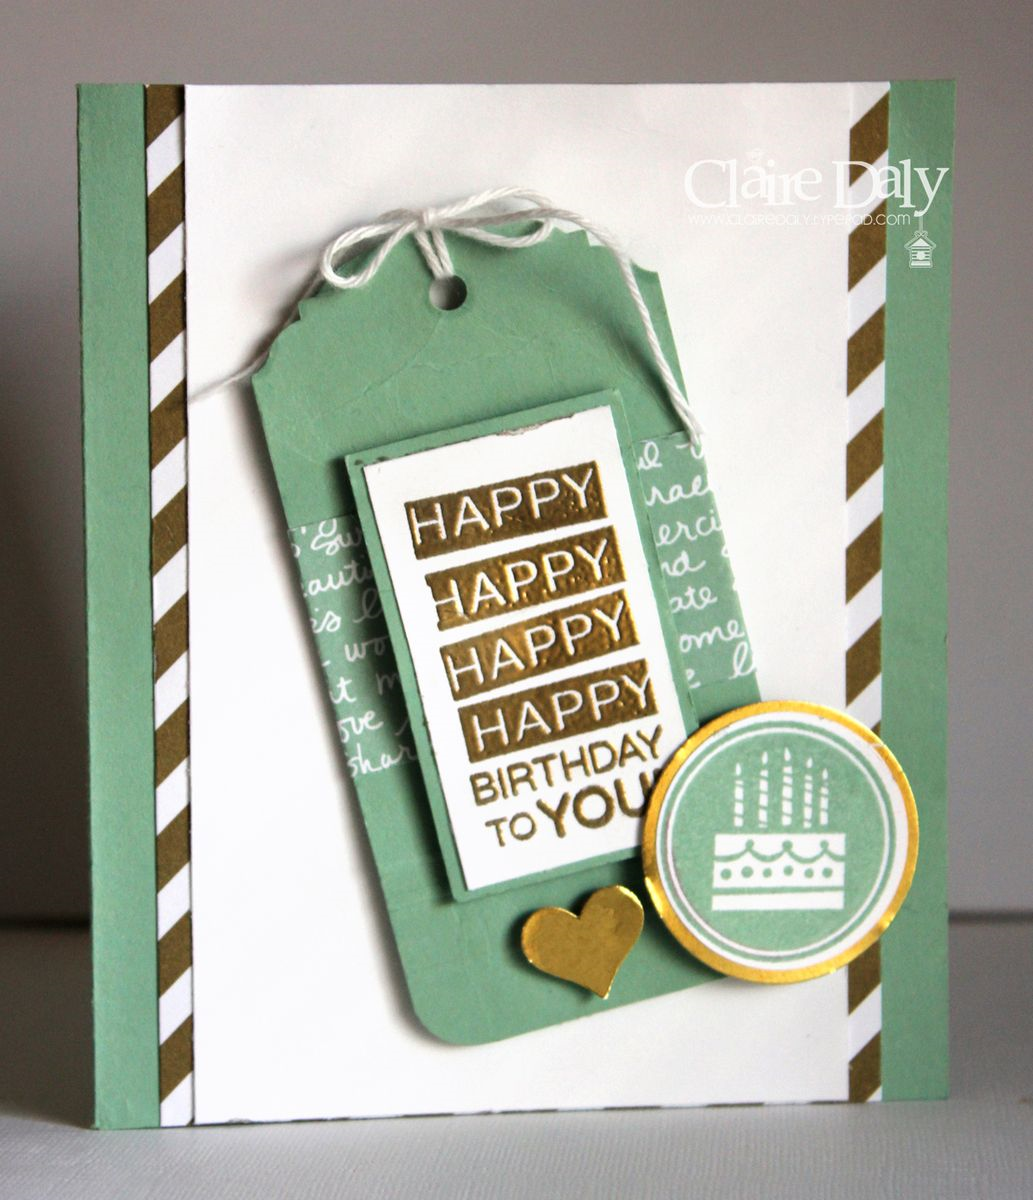 Stampin up australia claire daly independent demonstrator stampin up amazing birthday handmade birthday card by claire daly melbourne australia bookmarktalkfo Image collections